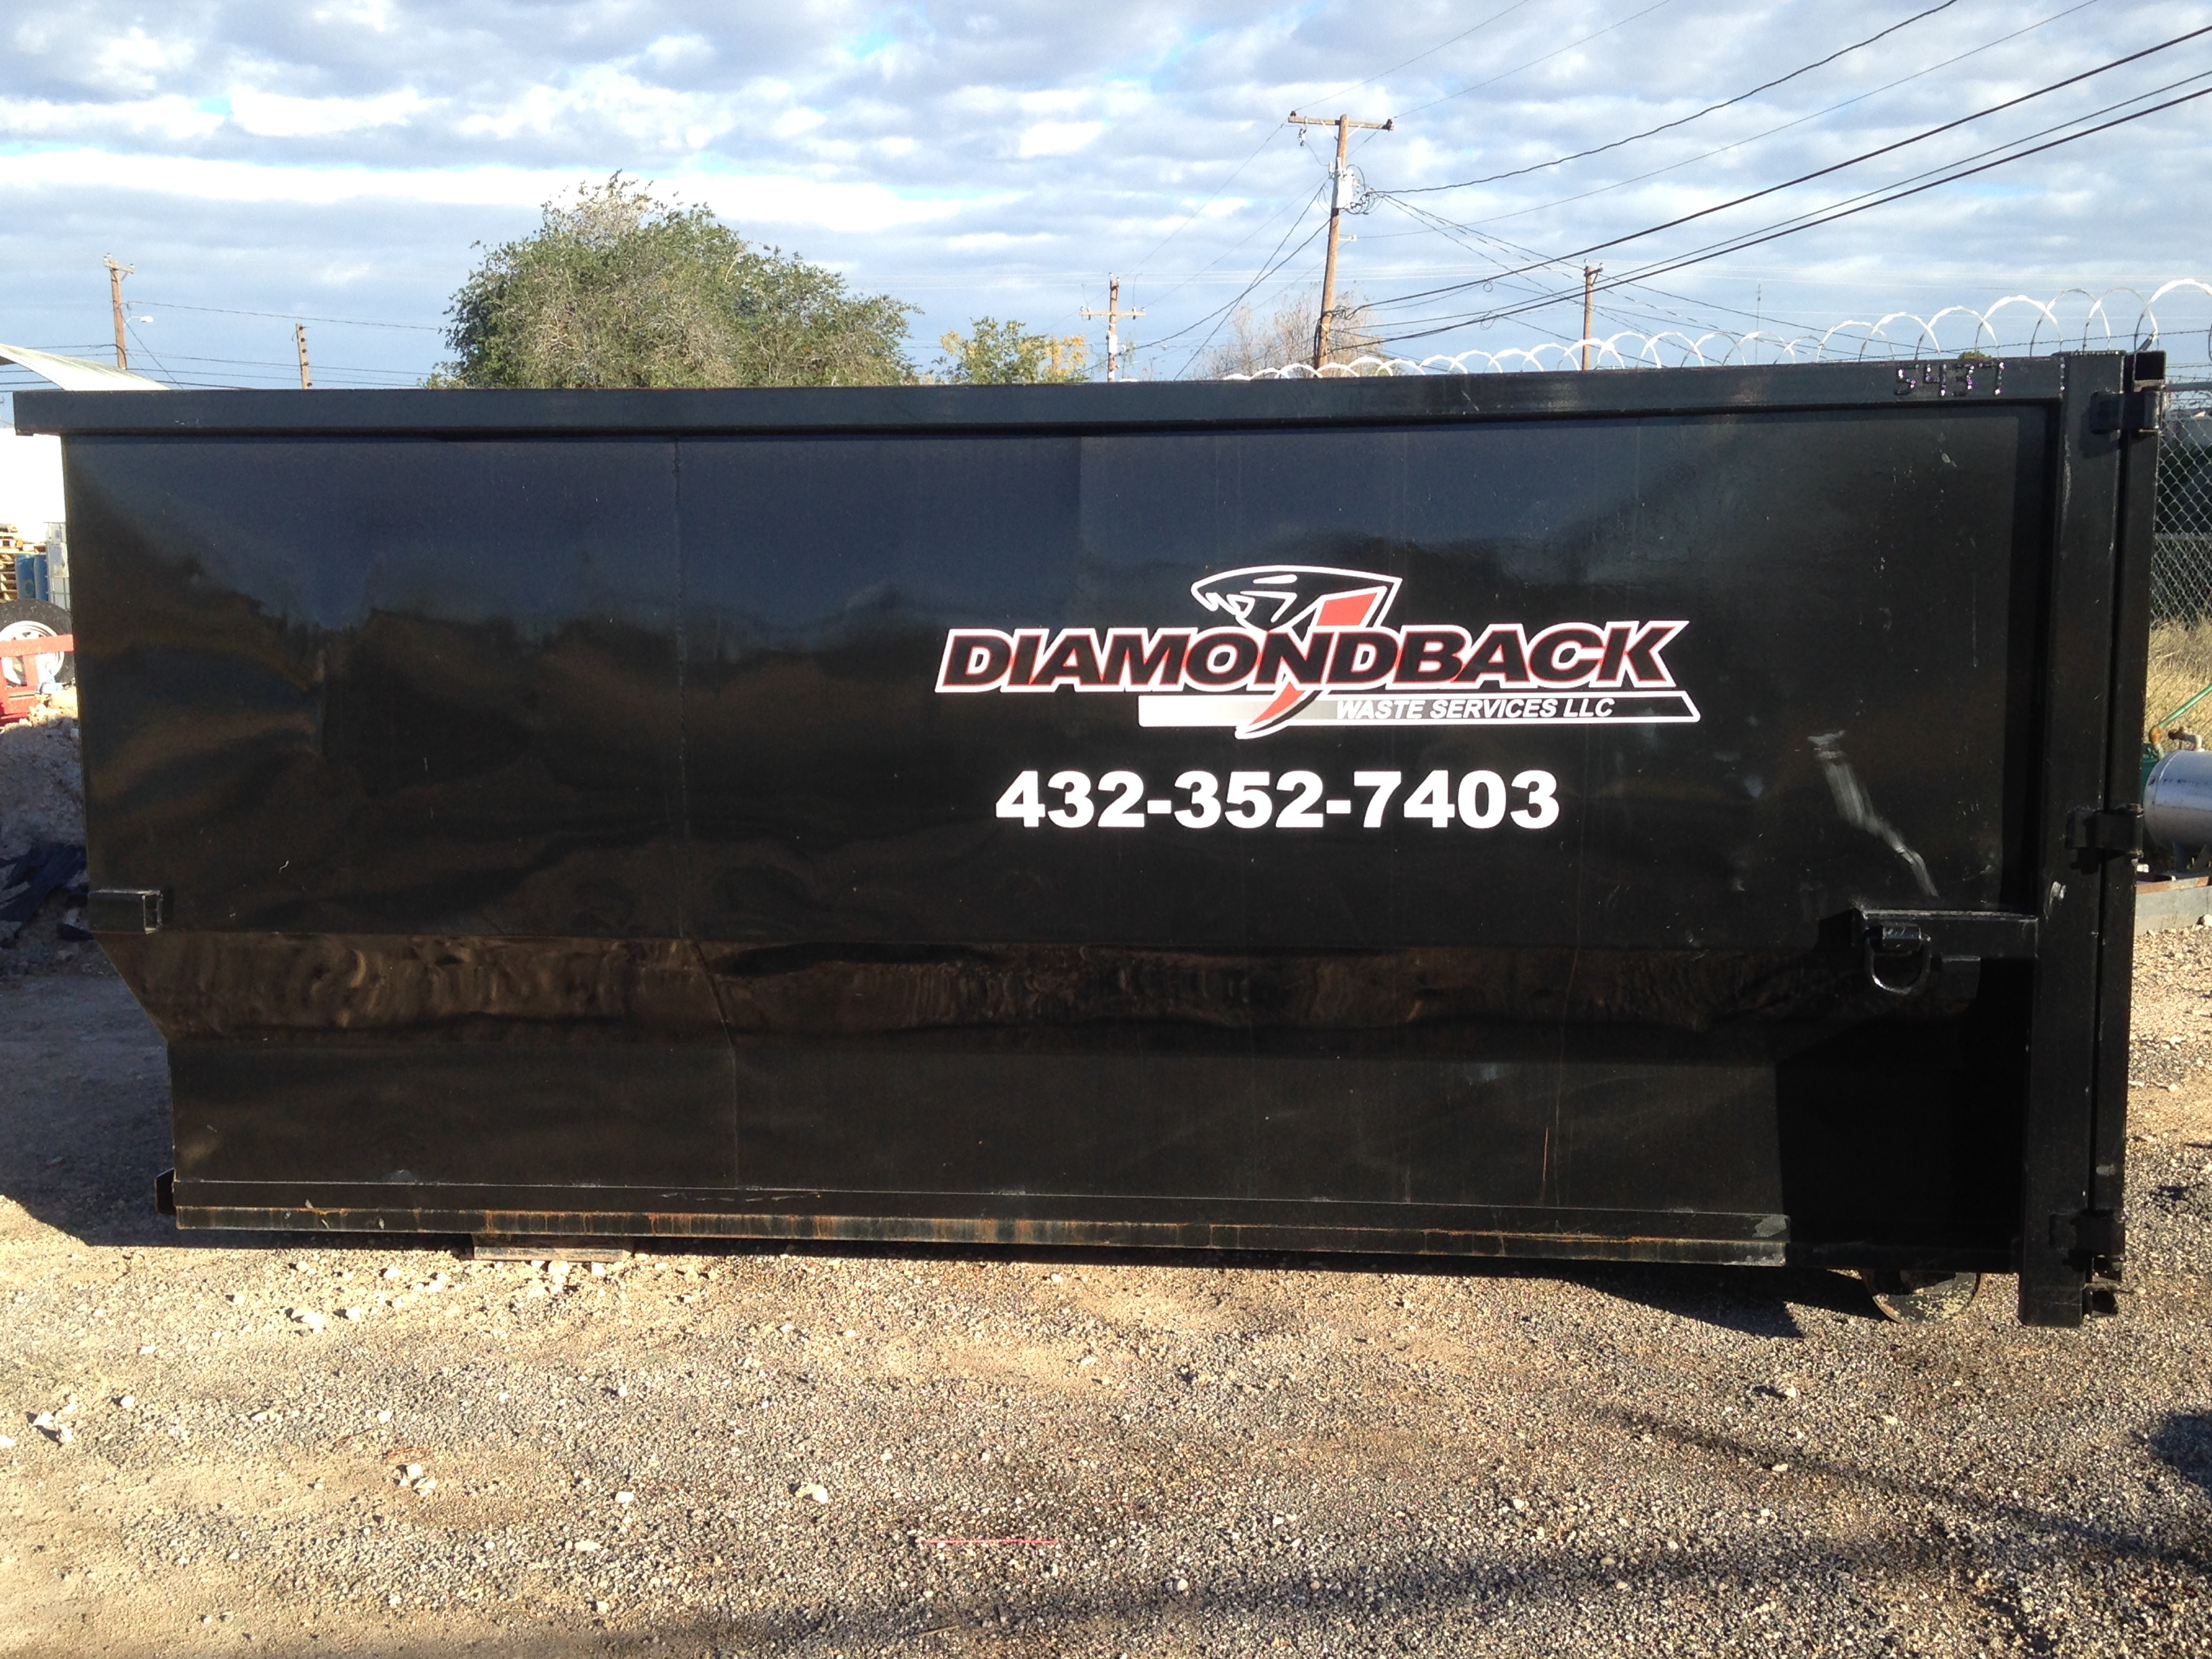 Diamondback Waste Services Llc 1409 W County Road 150